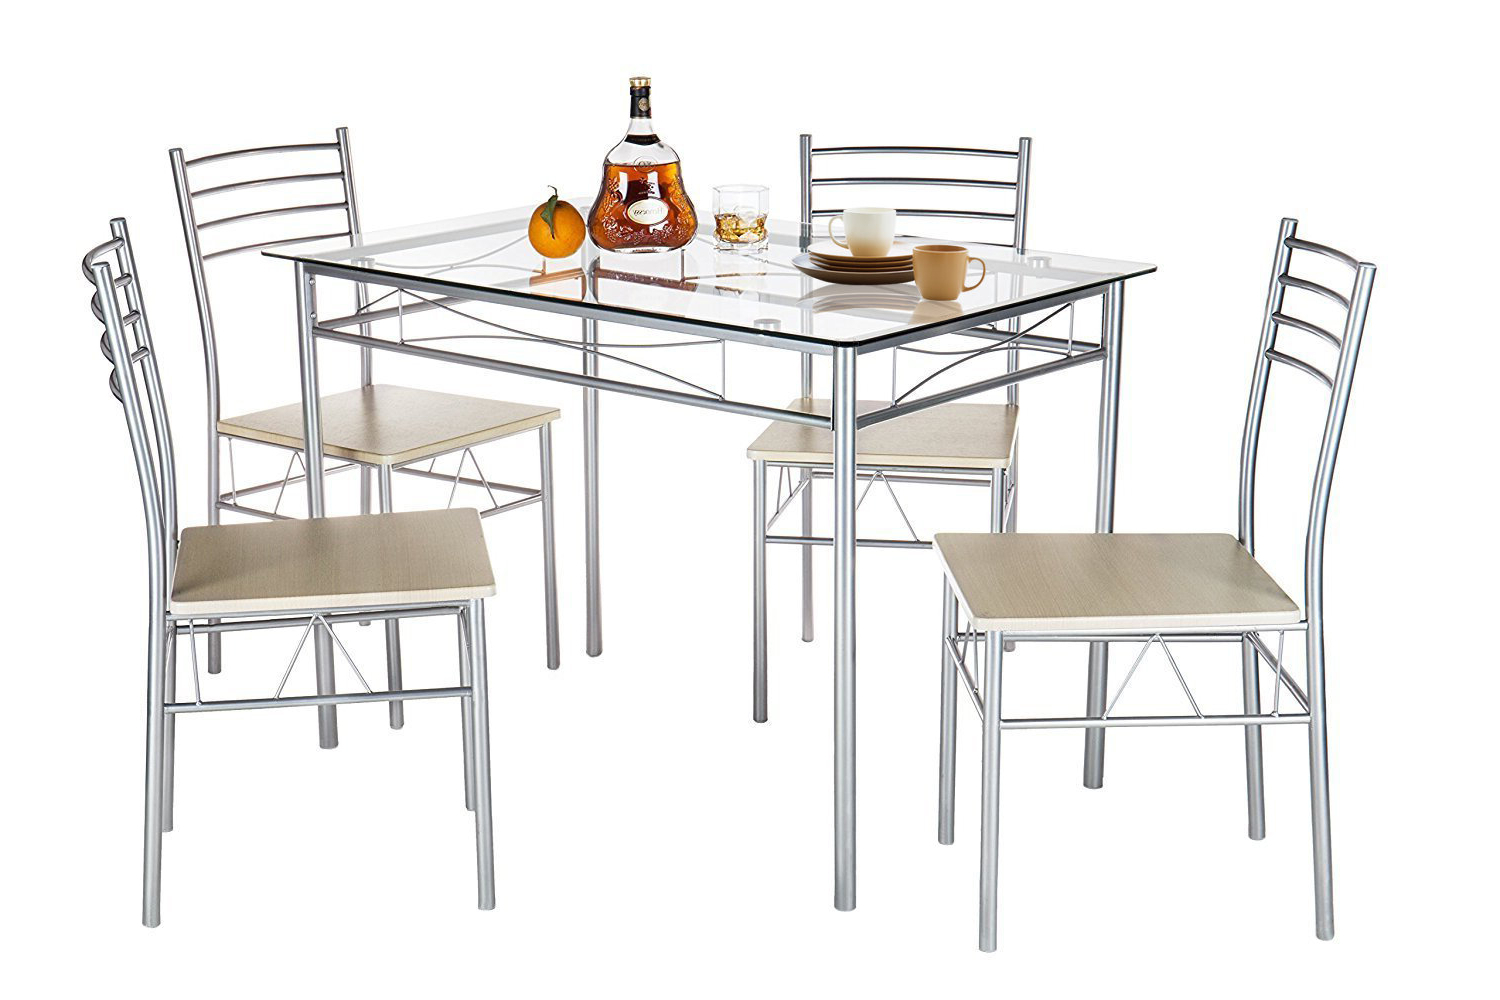 Ebern Designs Liles 5 Piece Breakfast Nook Dining Set & Reviews Within Favorite Tavarez 5 Piece Dining Sets (View 23 of 25)